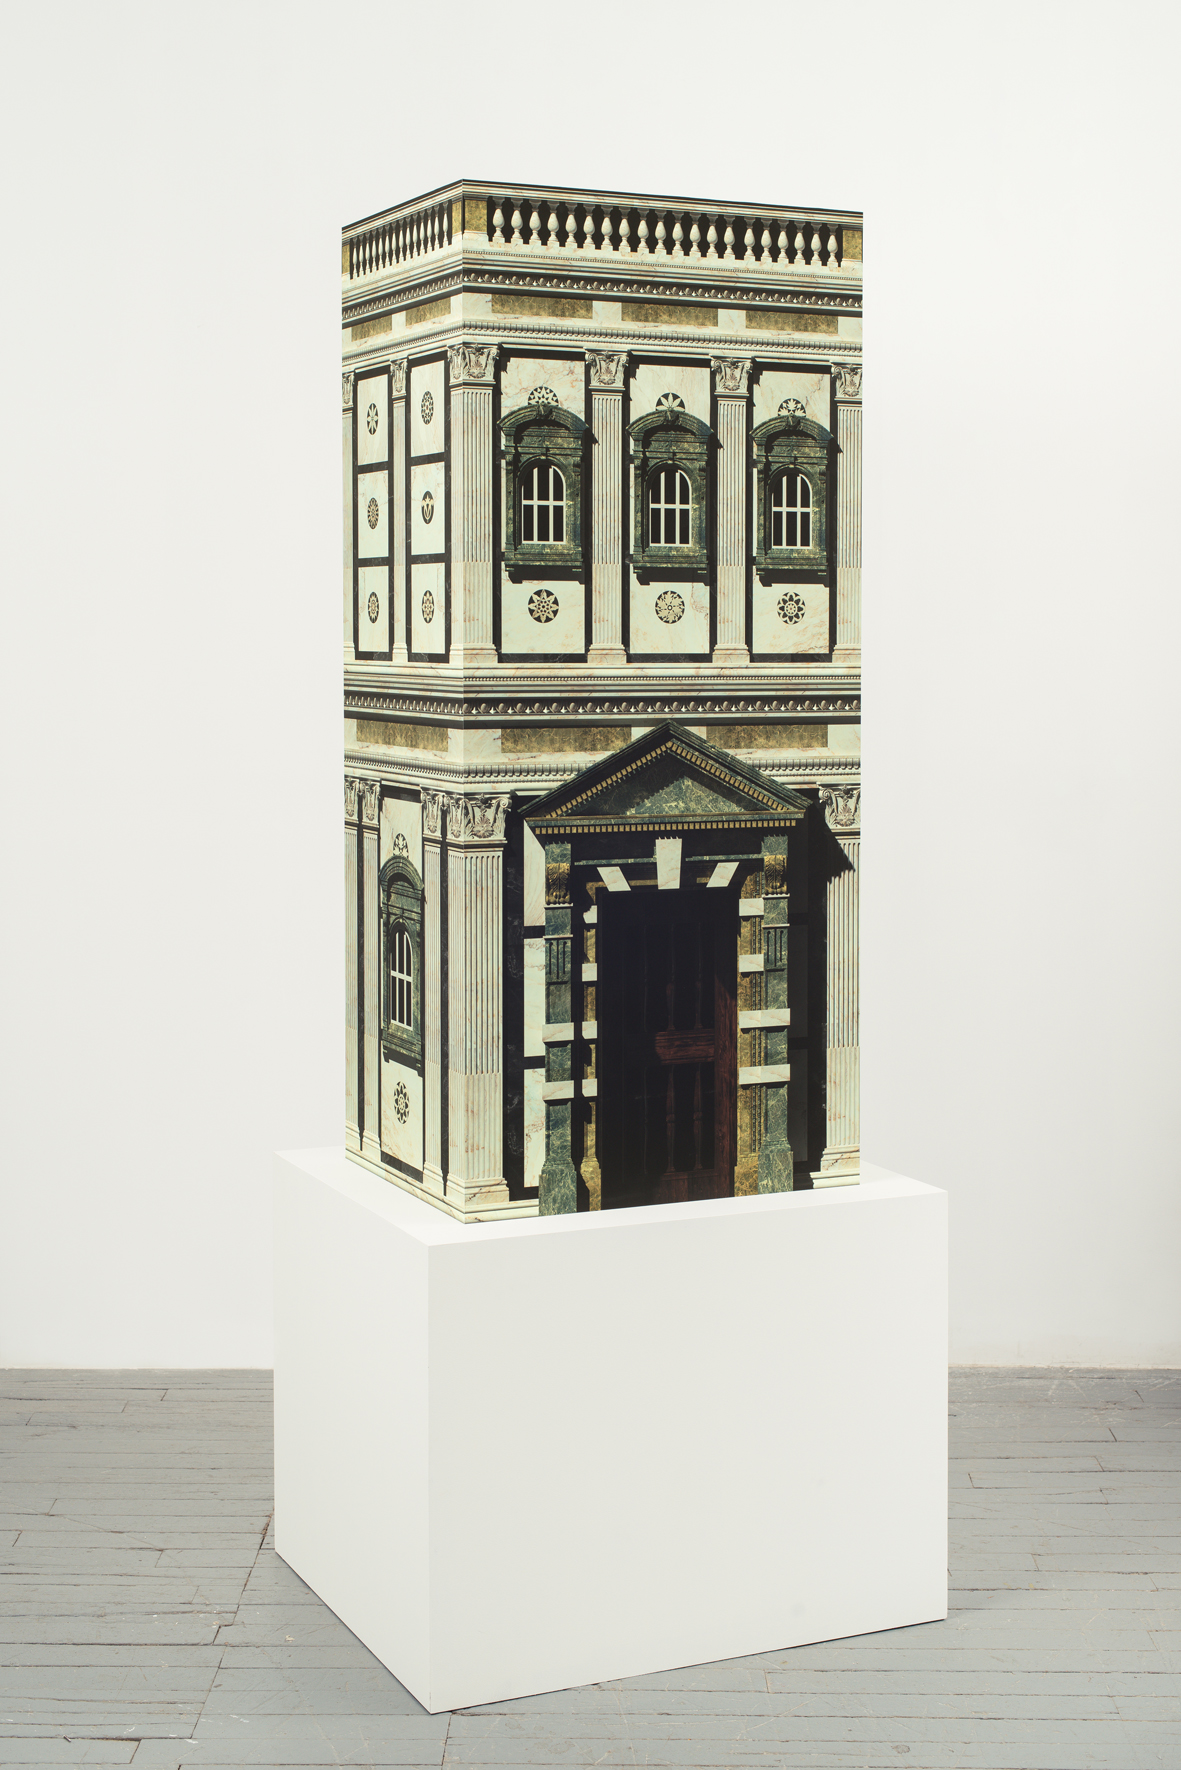 Hollow Renaissance Edifice 2016 Computer generated print on acid free cotton paper, MDF, plywood 159 x 70 x 54 cm / 62.5 x 27.5 x 21.2 in     Plinth 70 x 90 x 74 cm / 27.5 x 35.4 x 29.1 in